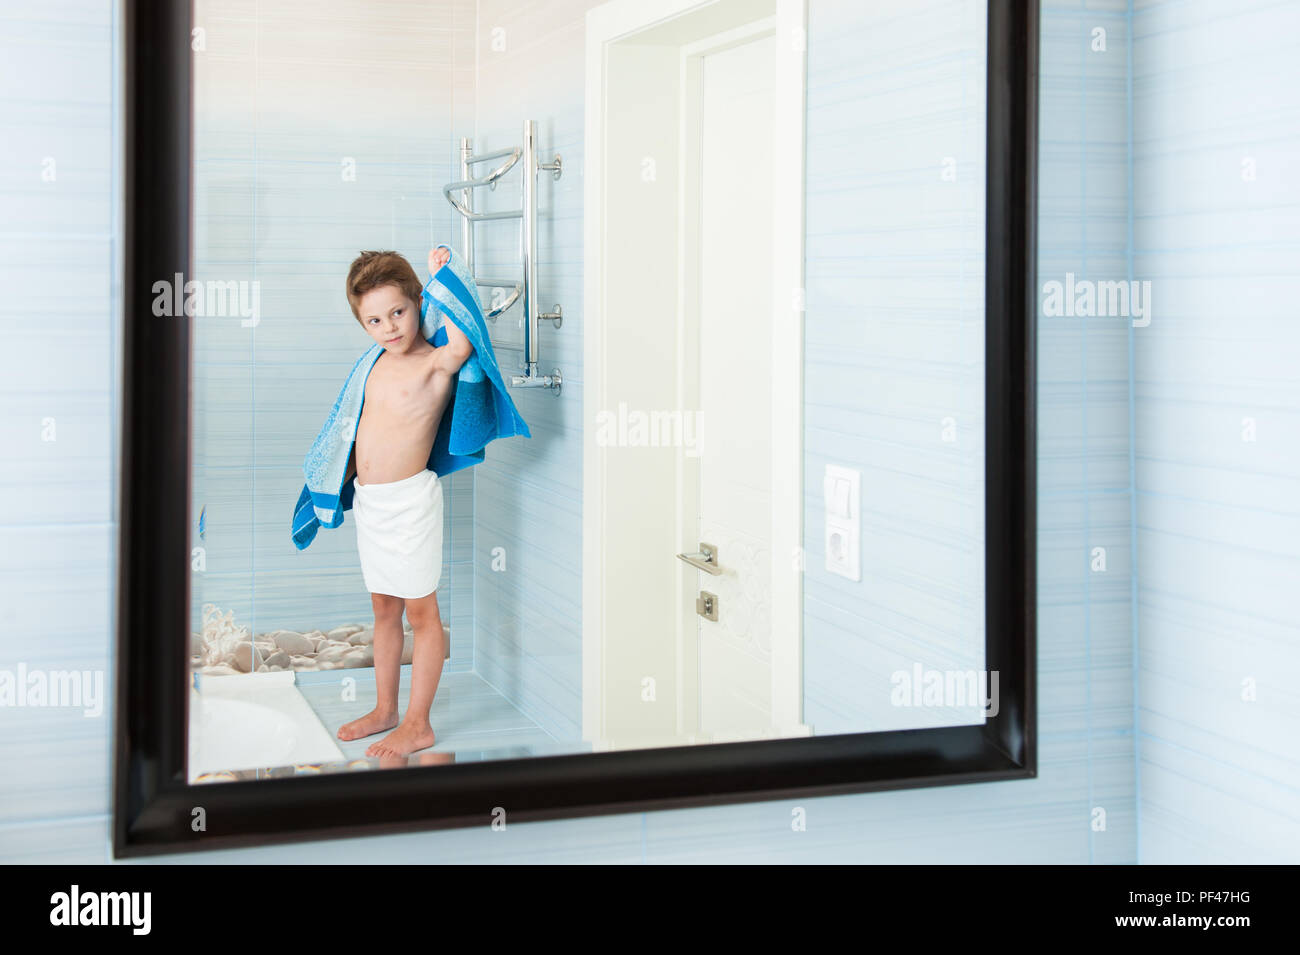 adorable healthy child dry off his body with blue towel in morning bathroom Stock Photo